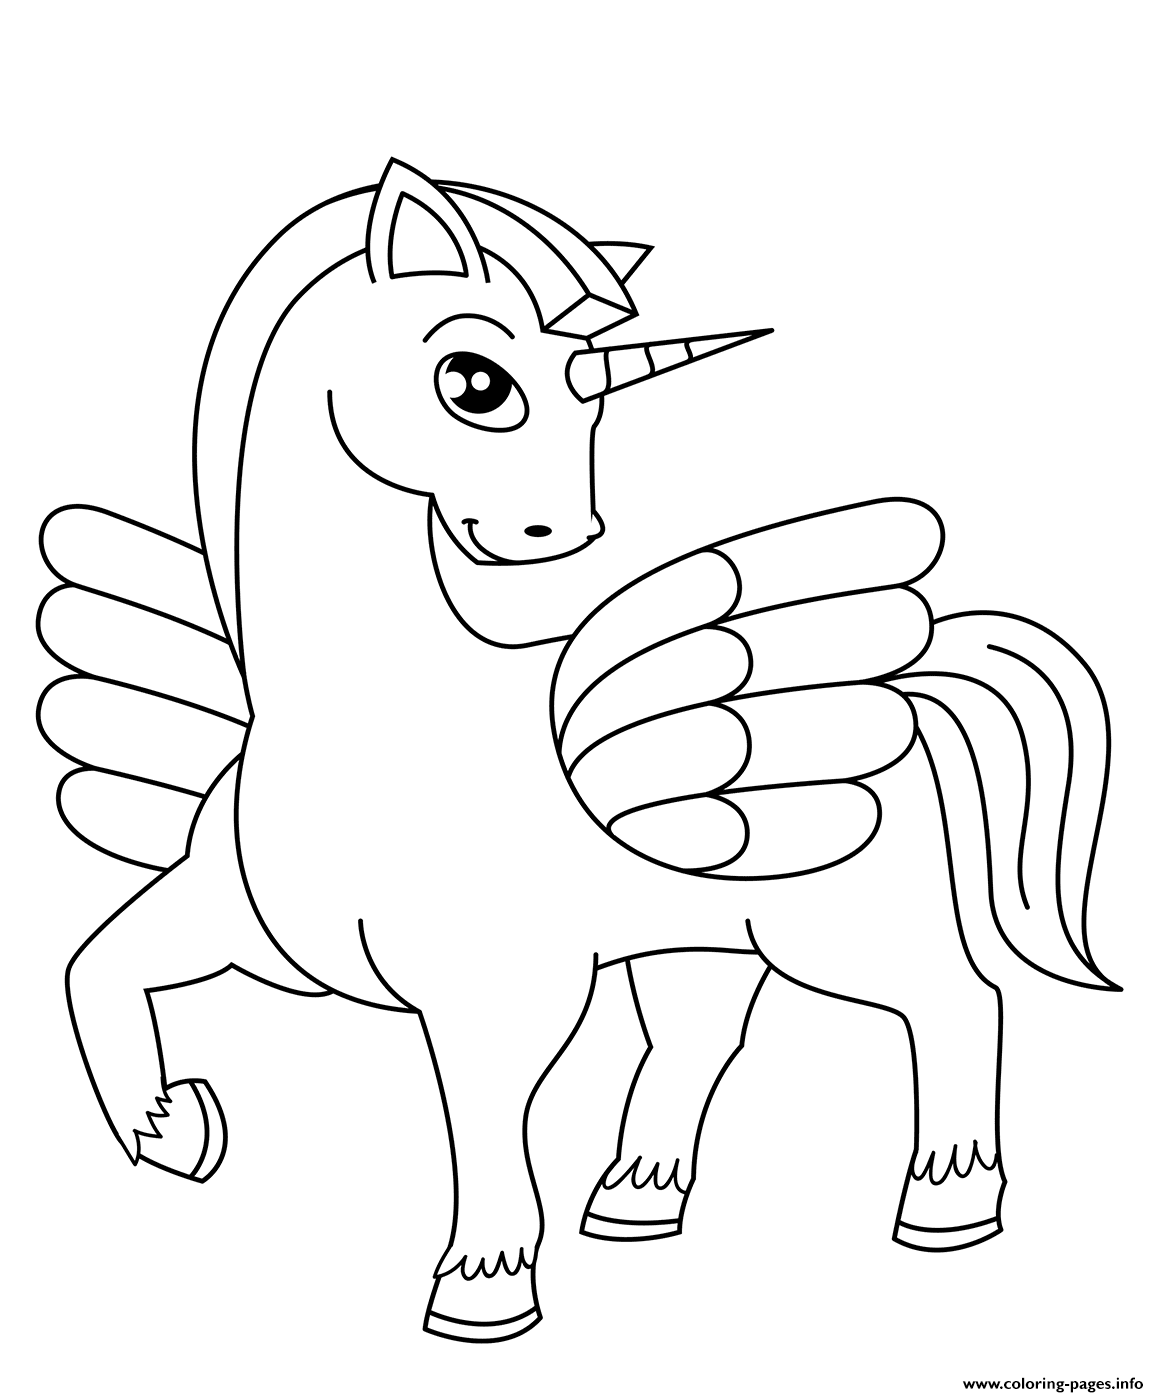 Cute Unicorn 1 Coloring Pages Printable